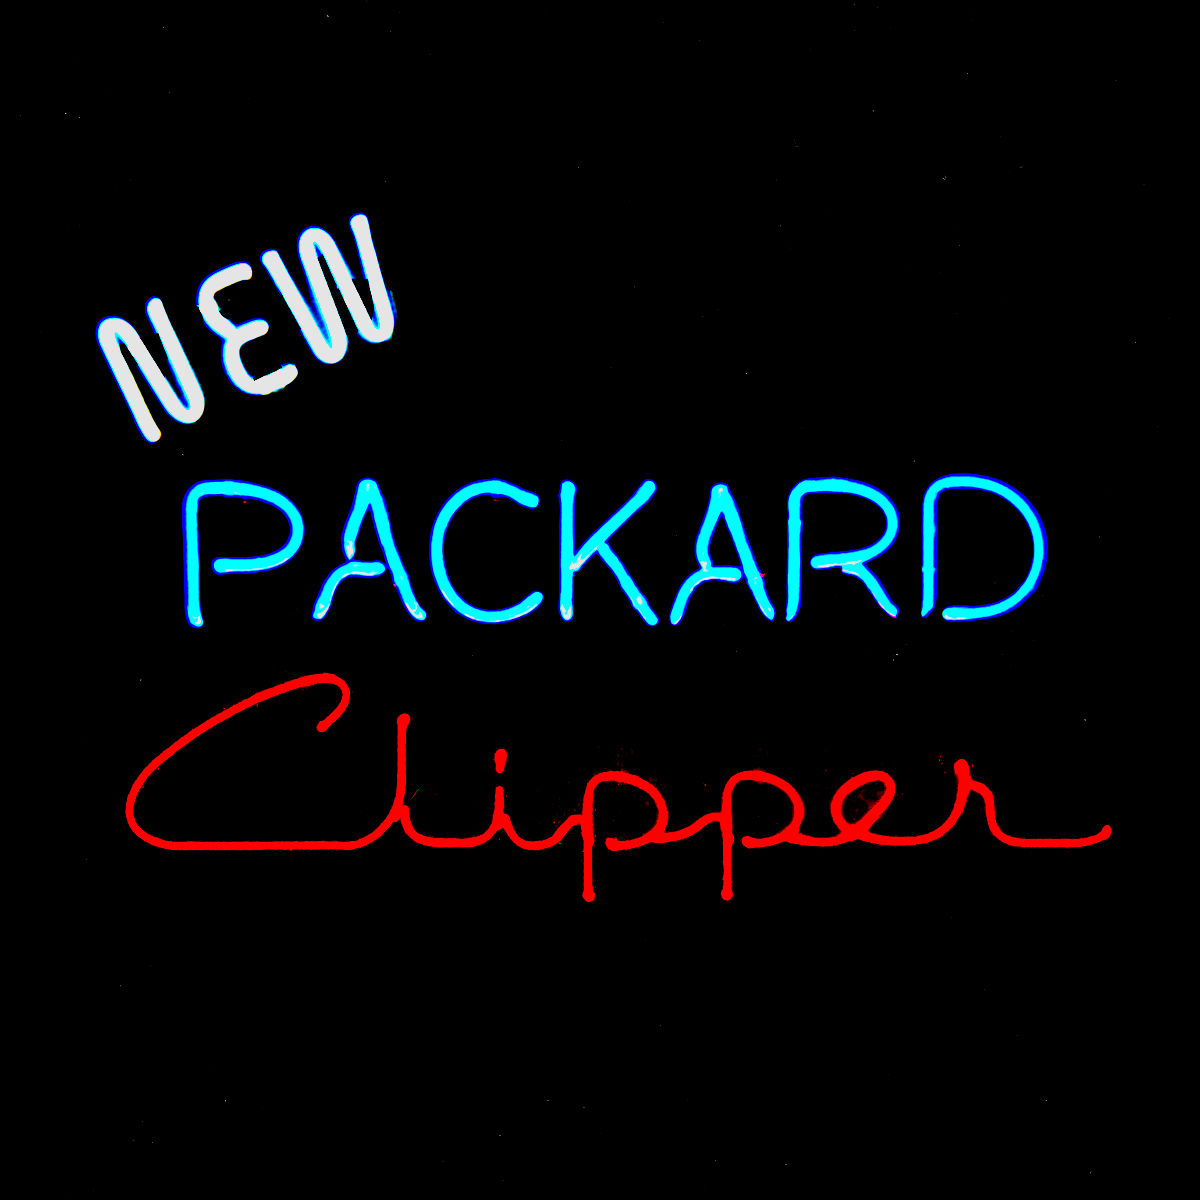 NEW PACKARD CLIPPER - Dealership Neon Sign by John Barton - BartonNeonMagic.com